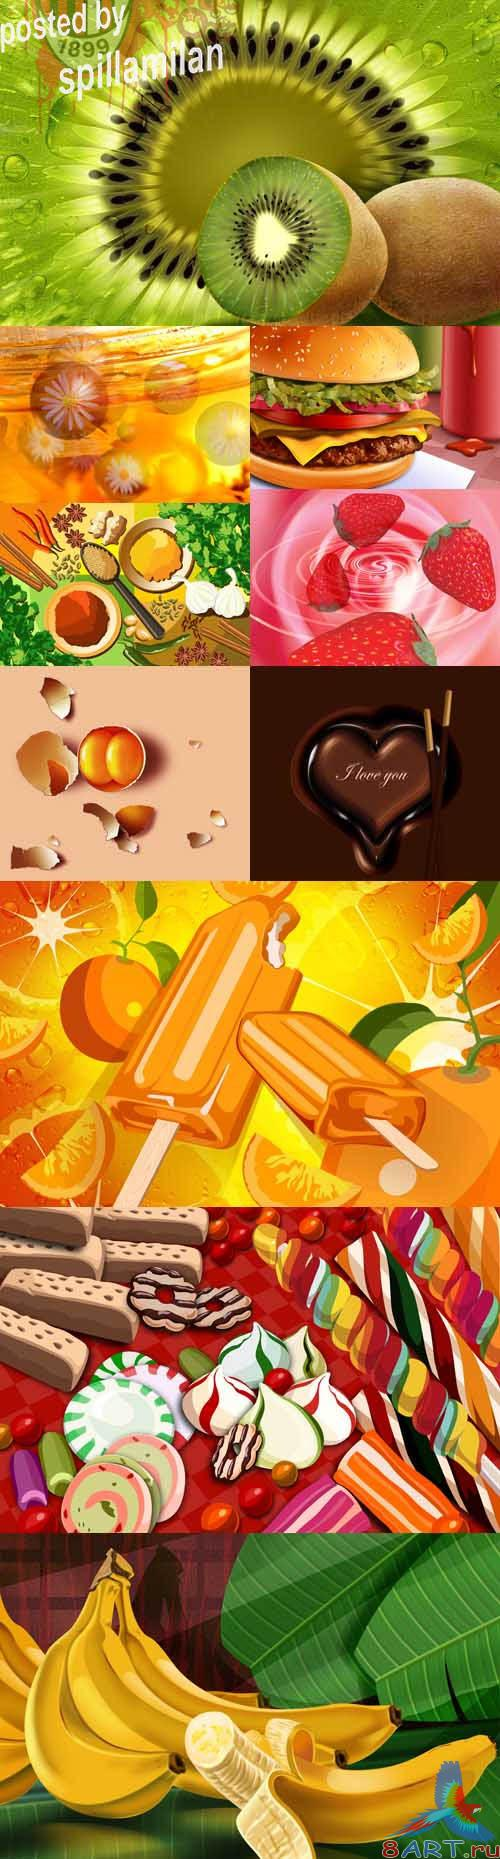 Collection of fruits and sweets Psd Sources for Photoshop